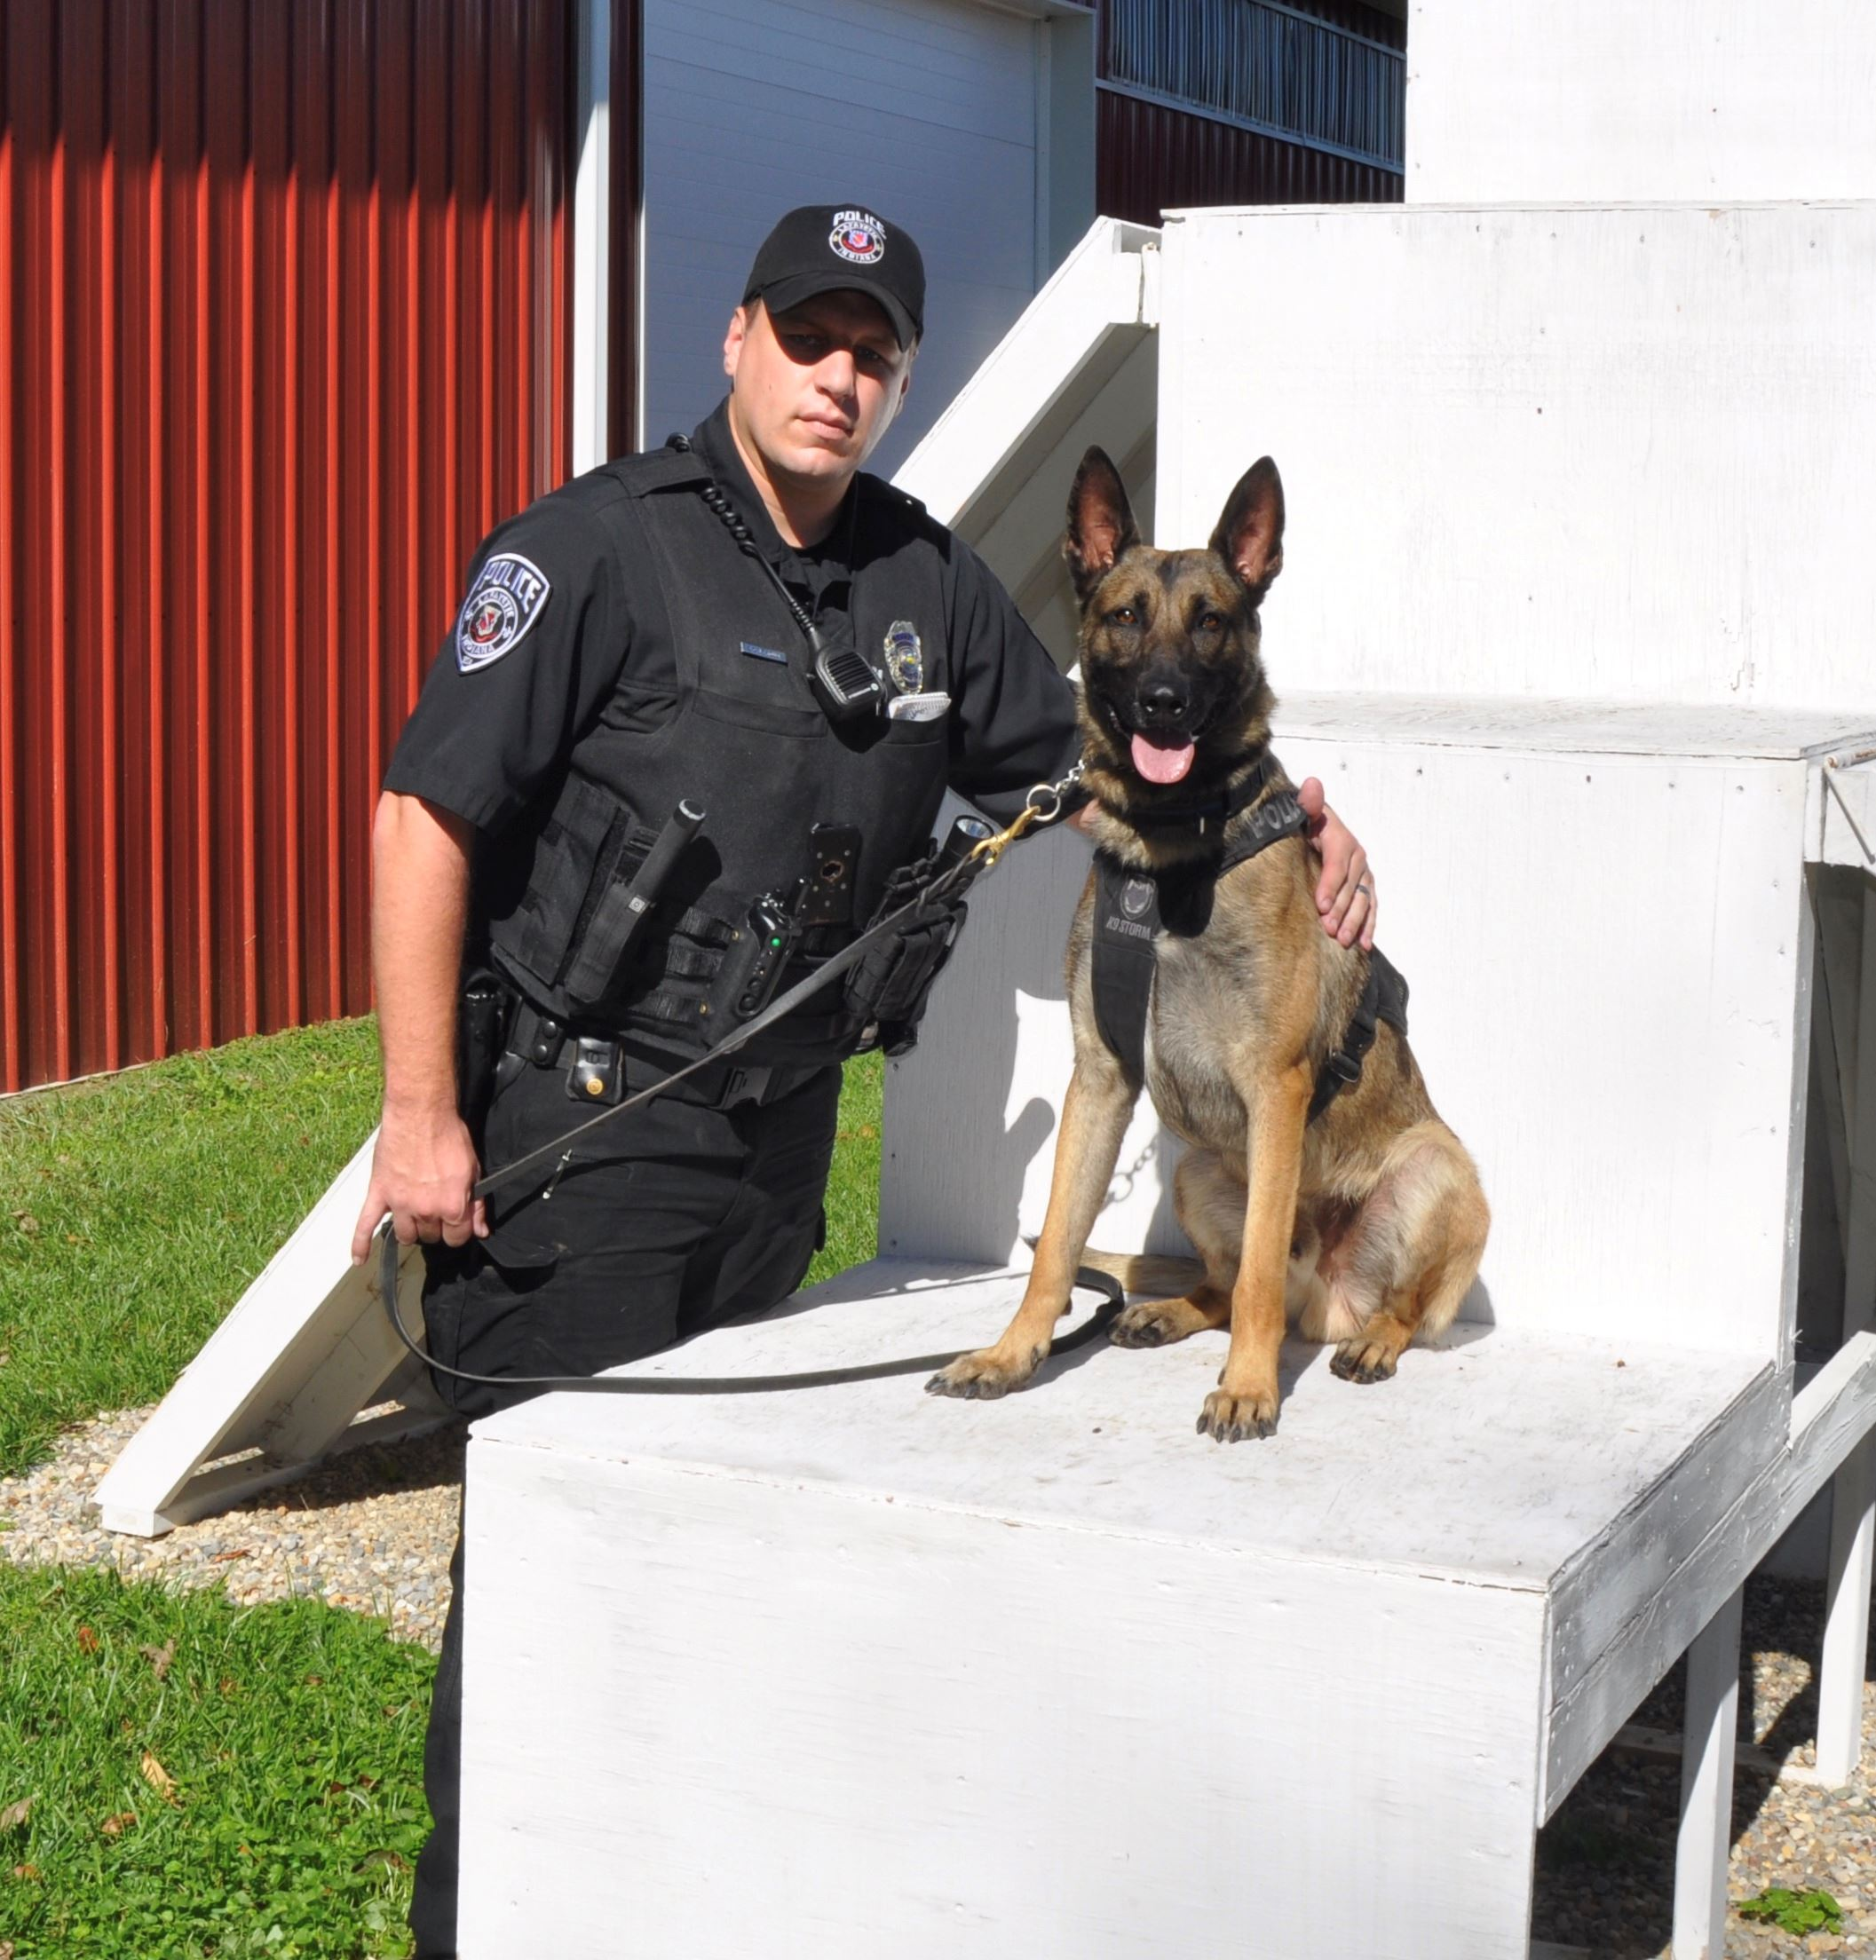 Officer Leroux and K9 Cezar 2017